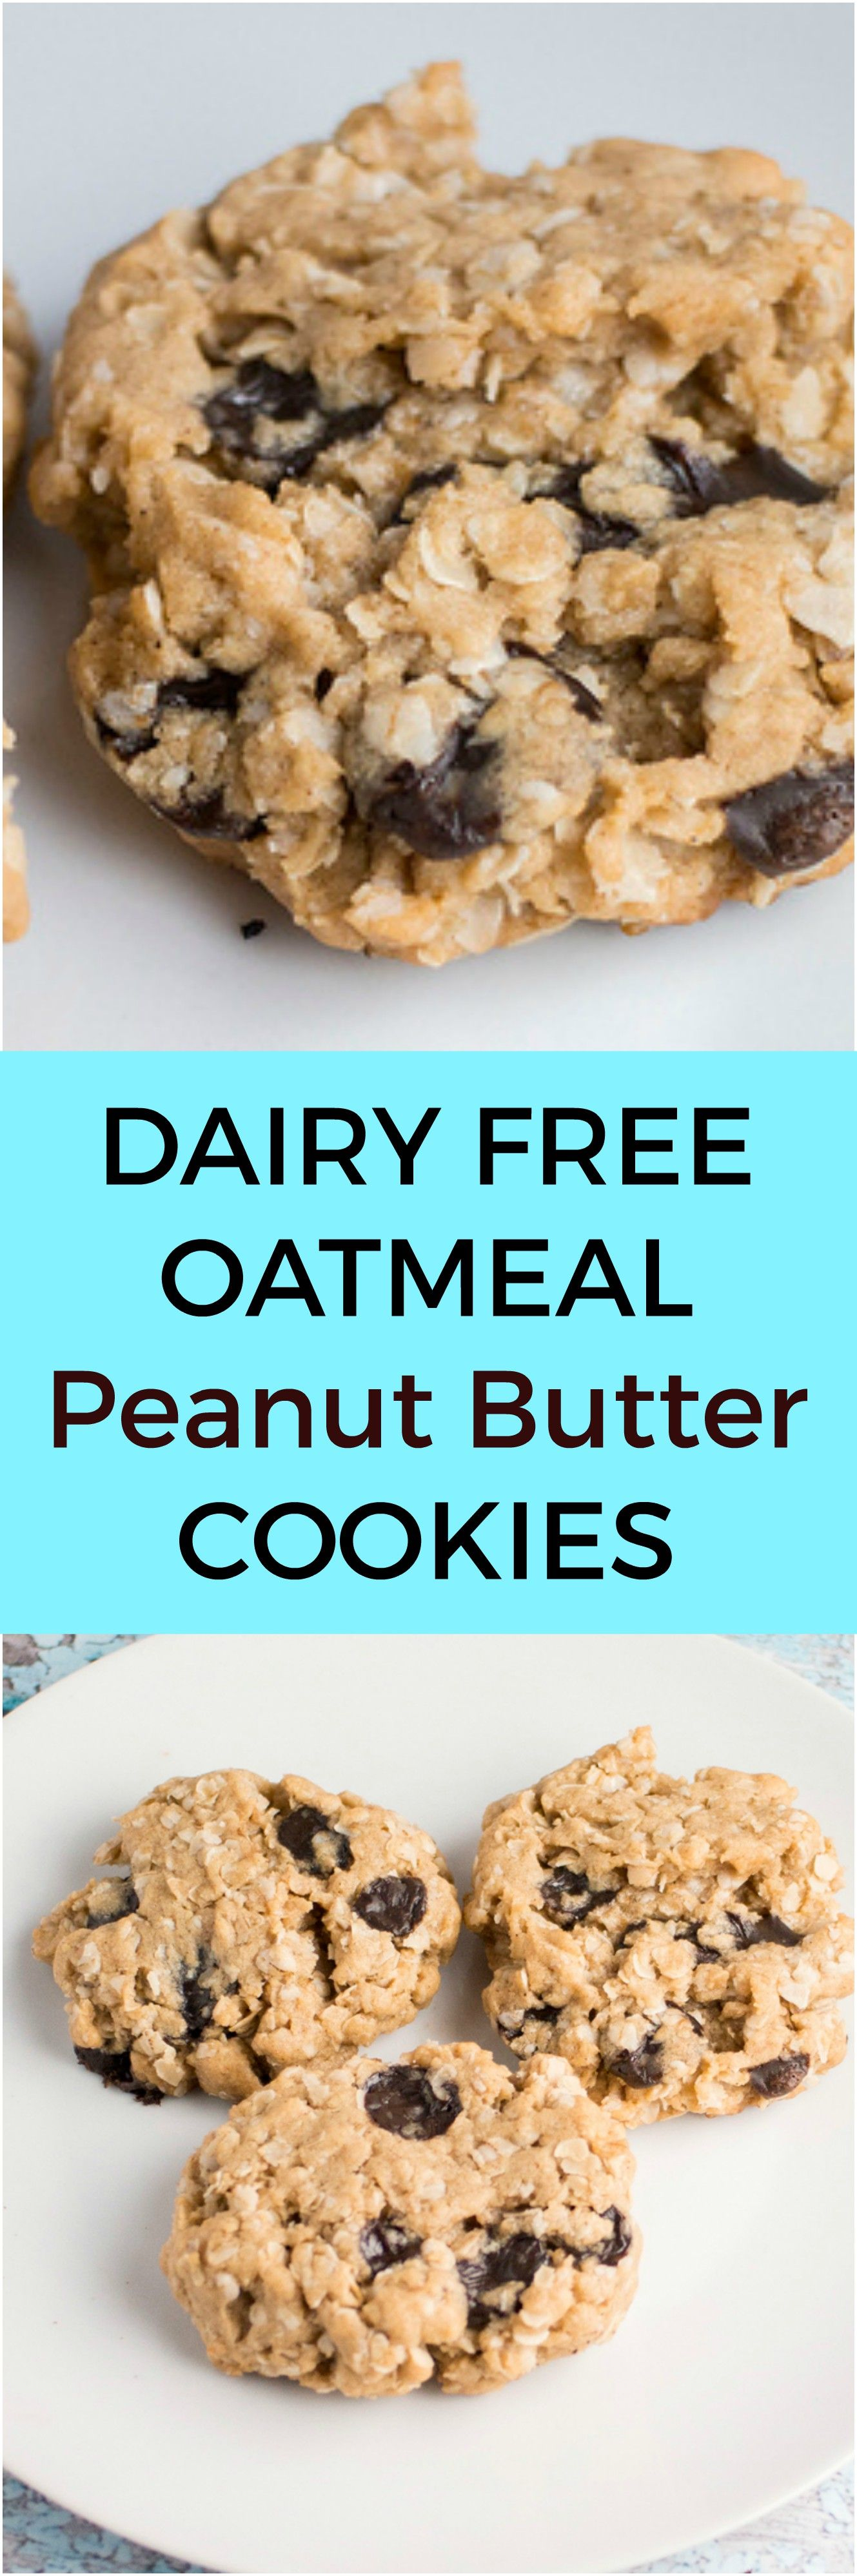 Oatmeal Peanut Butter Cookies (Dairy Free Option) Recipe